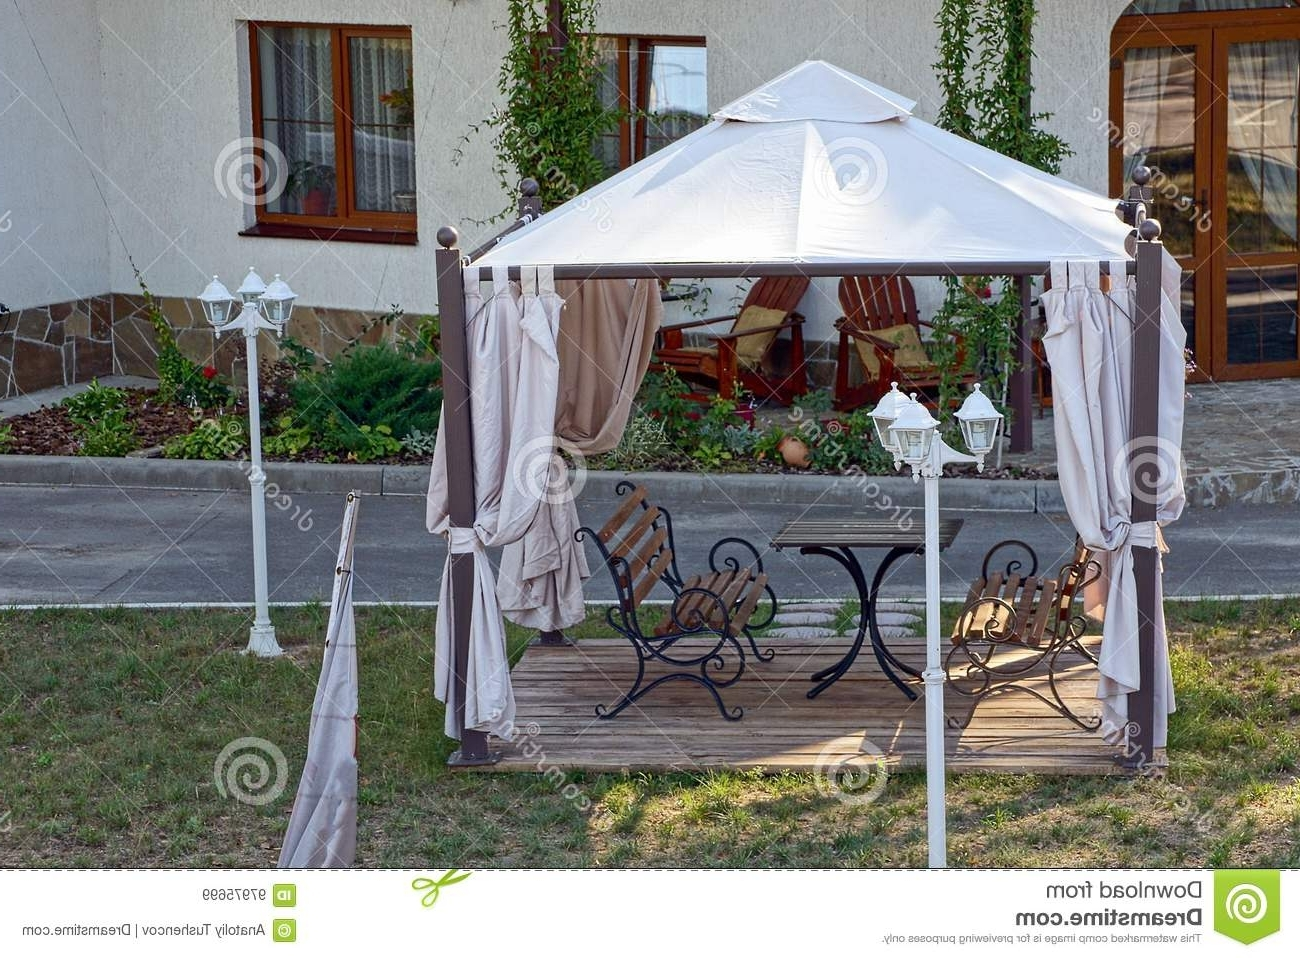 Well Known Outdoor Gazebo Lanterns Pertaining To Open Gazebo With Benches On The Lawn With Lanterns Near The Road (View 4 of 20)